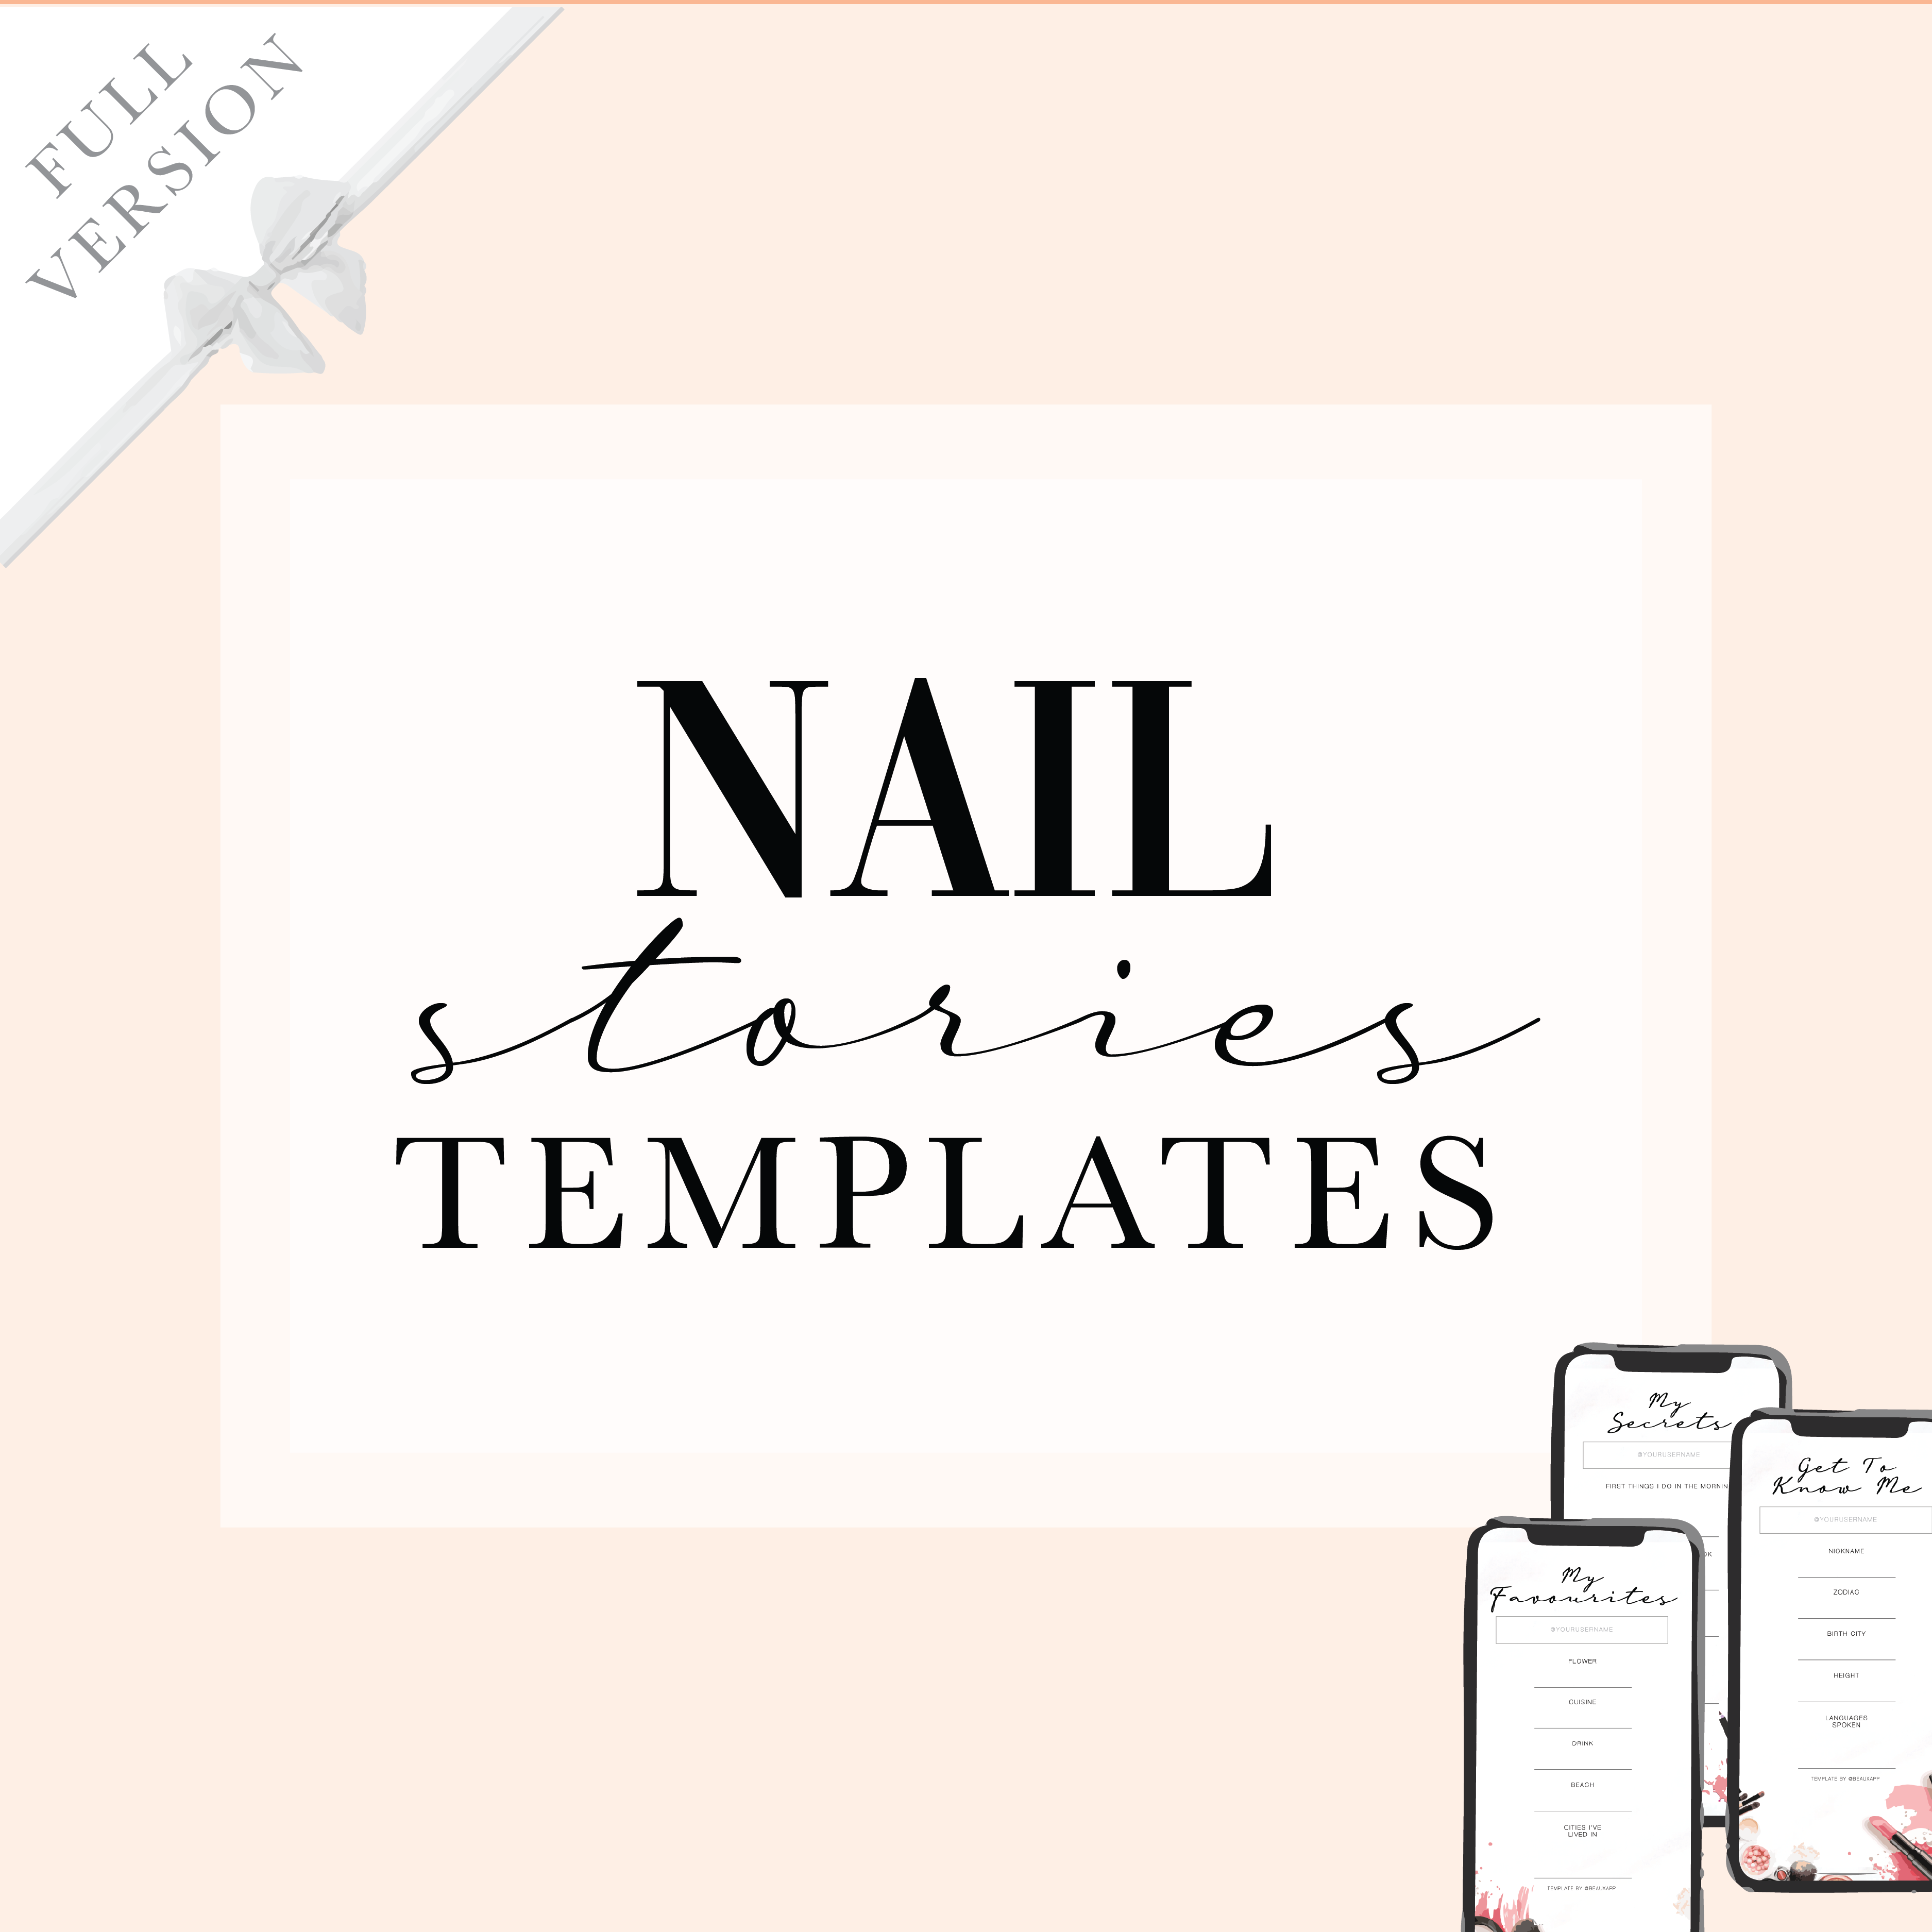 Instagram Facebook stories template for beauty industry nail technician salon manicure pedi mani social media content ideas